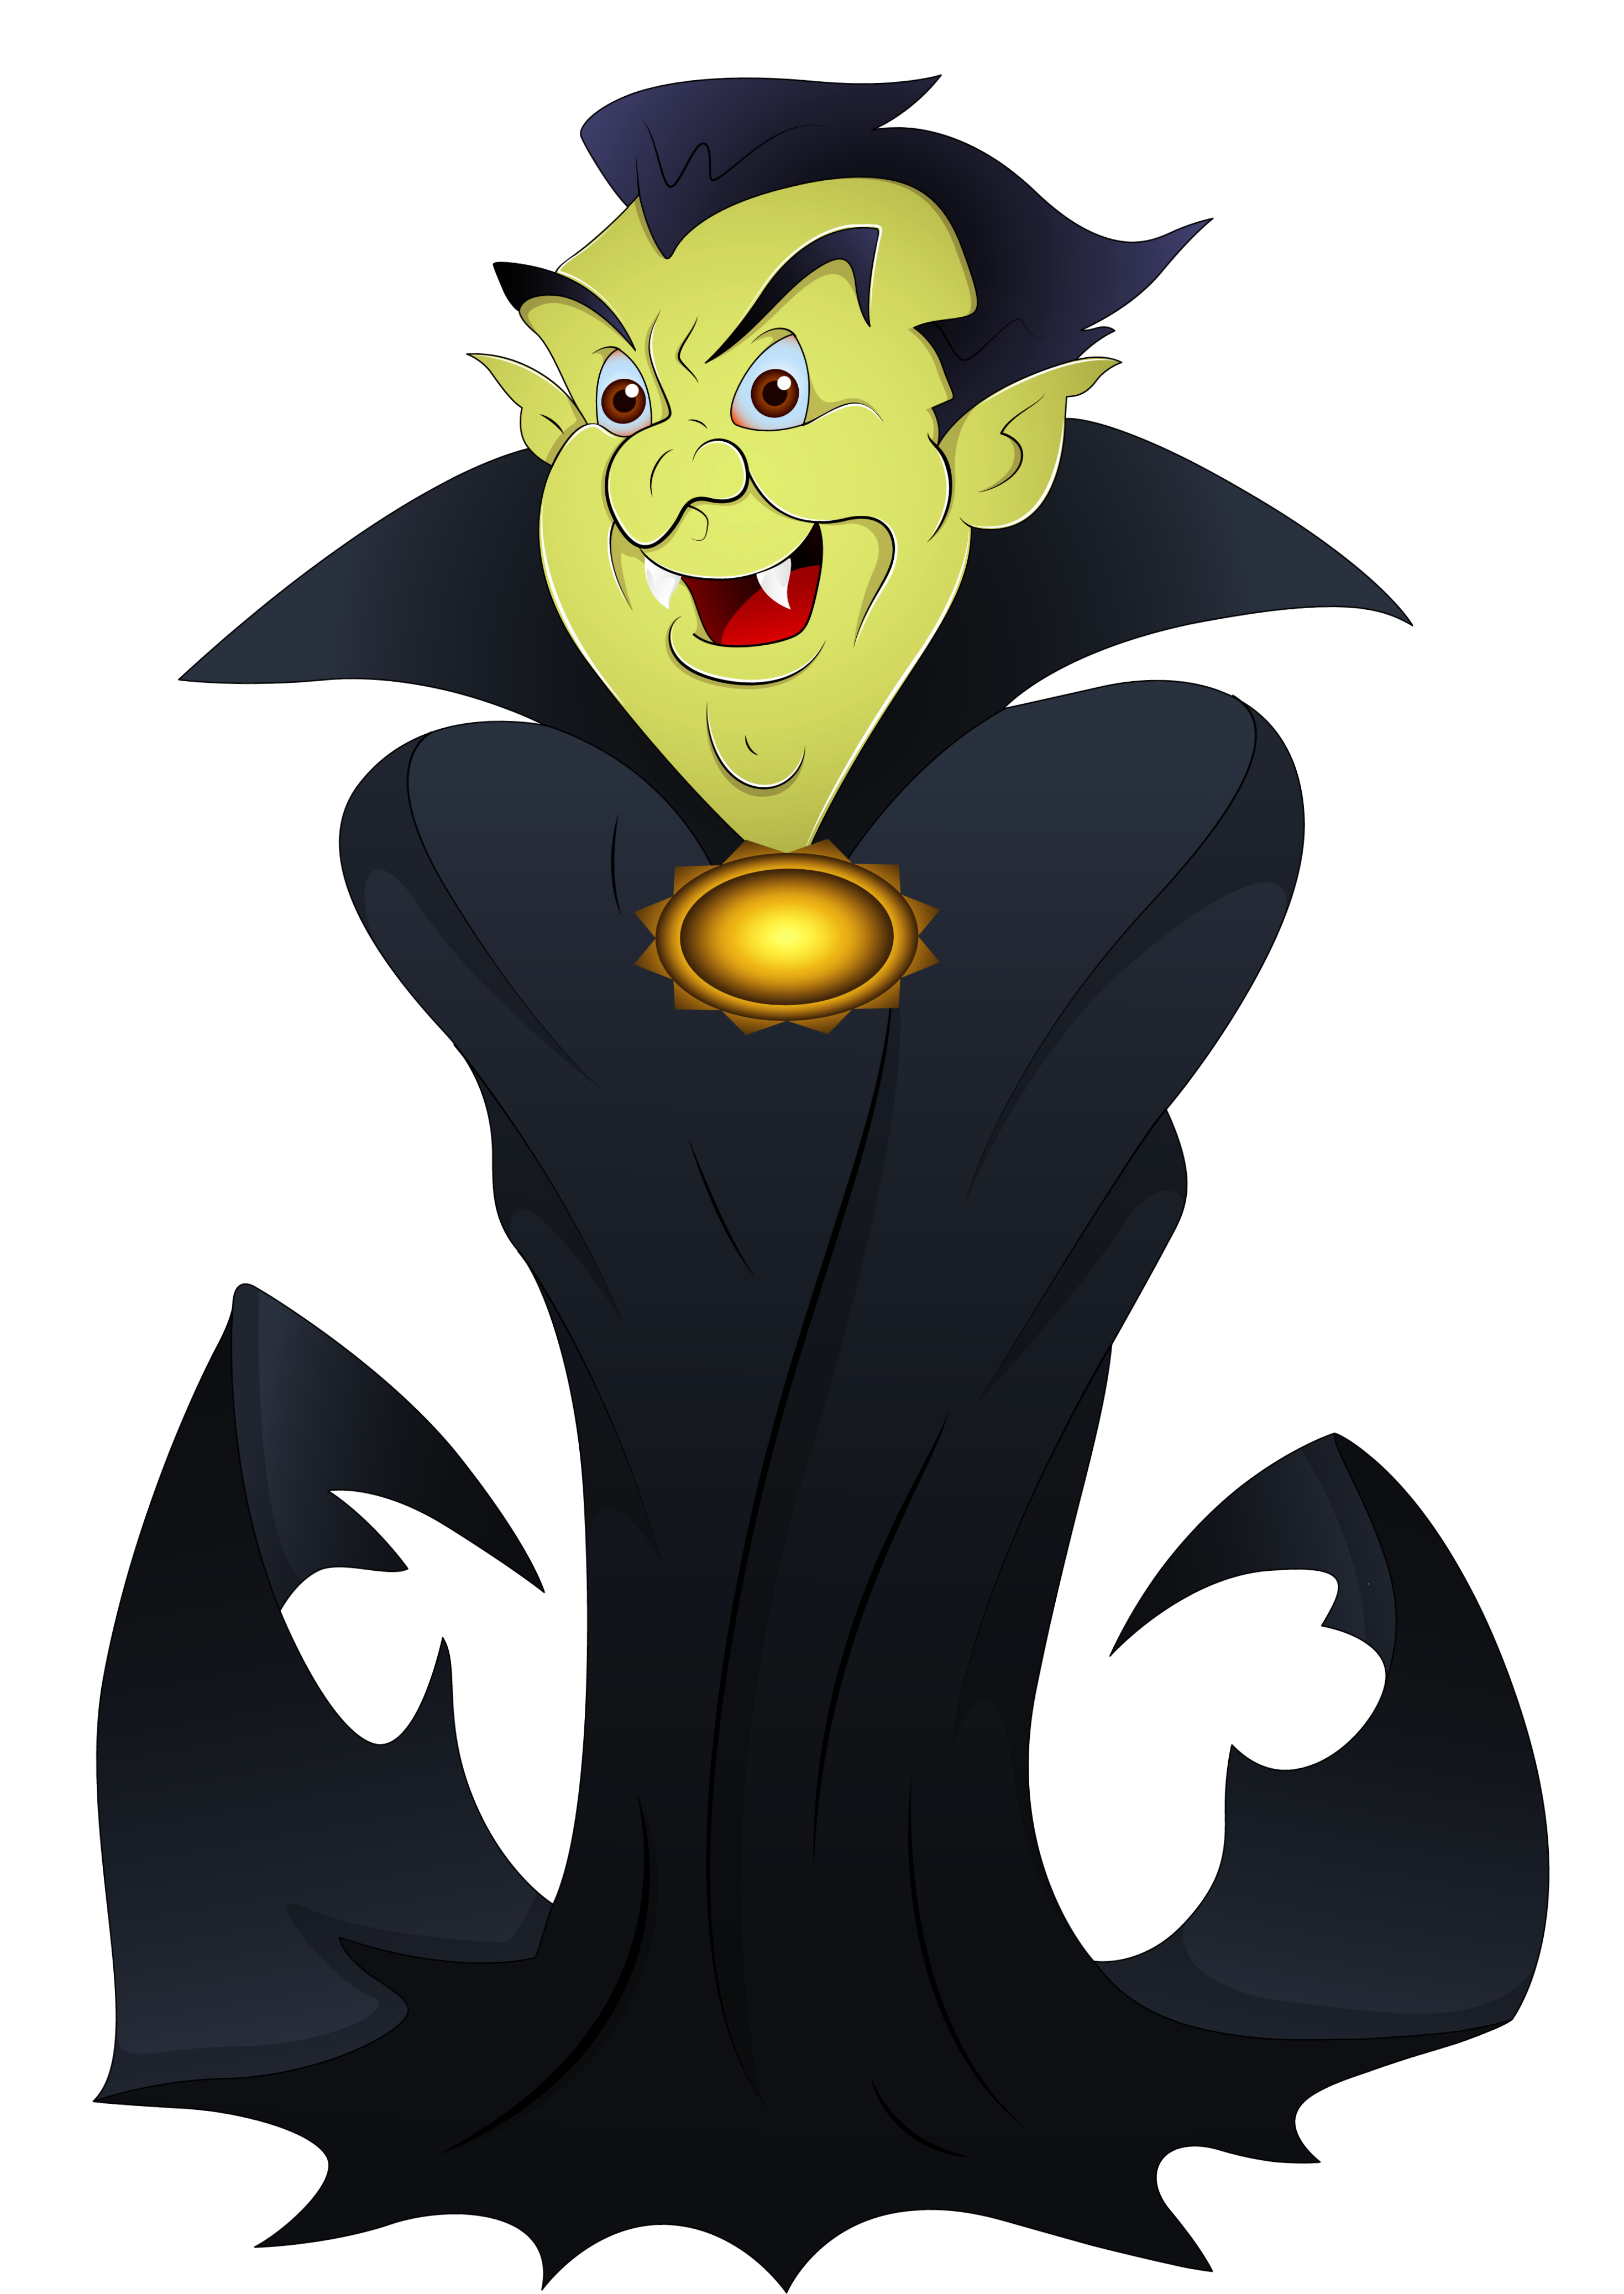 clip library download Dracula clipart scary free. Vampire transparent background